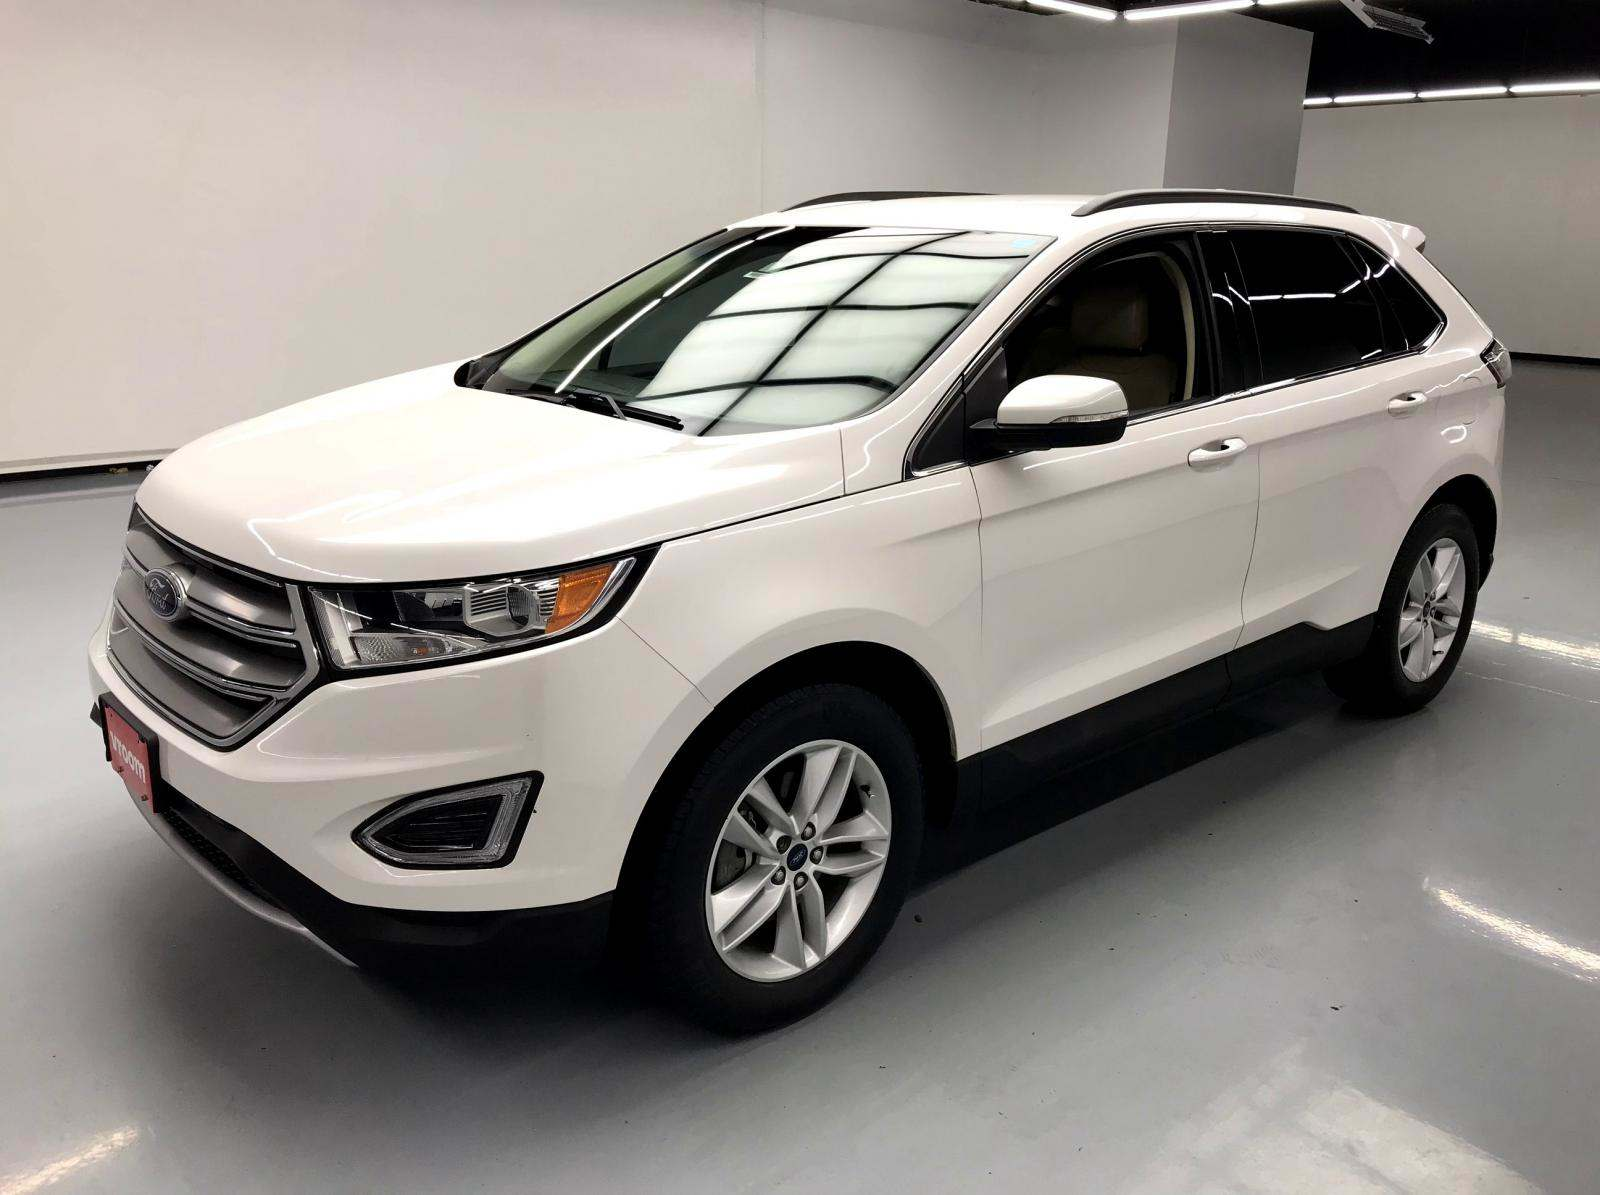 used Ford Edge 2015 vin: 2FMTK3J81FBB96272